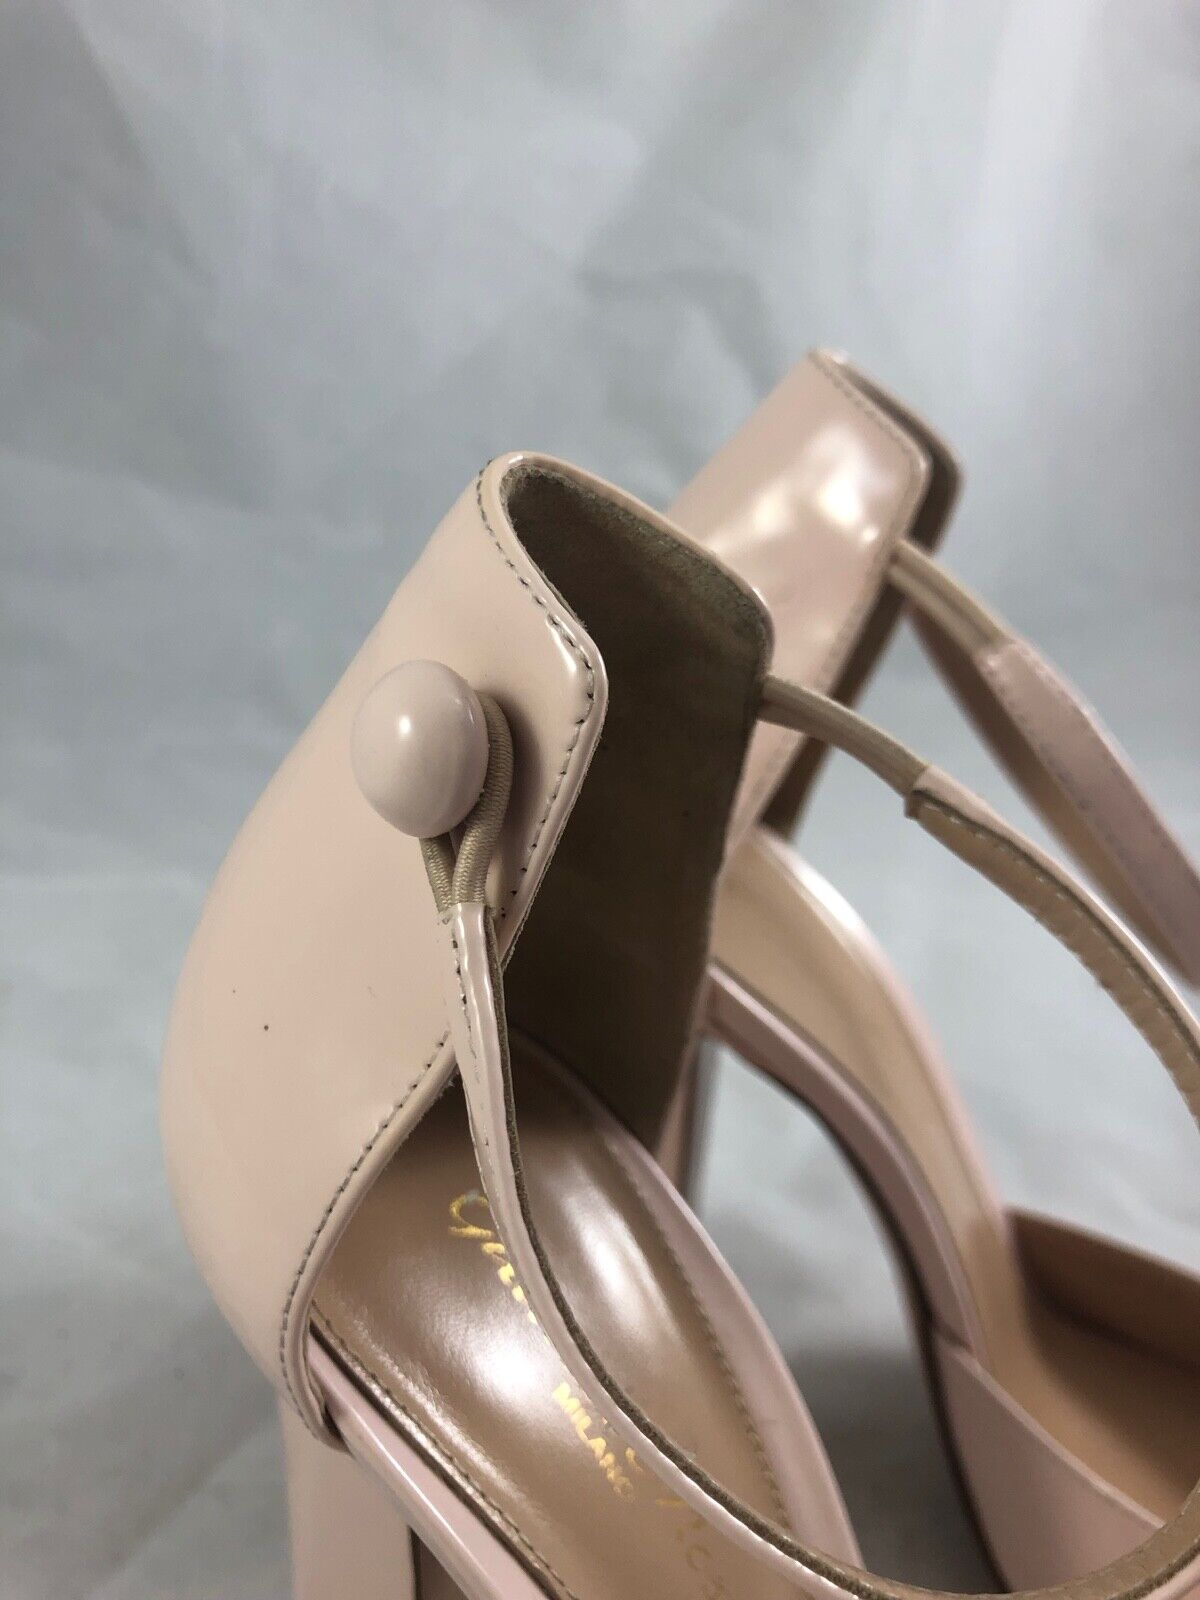 GIANVITO ROSSI Patent Patent Patent Leather Pumps in Baby Pink Size 38 138095